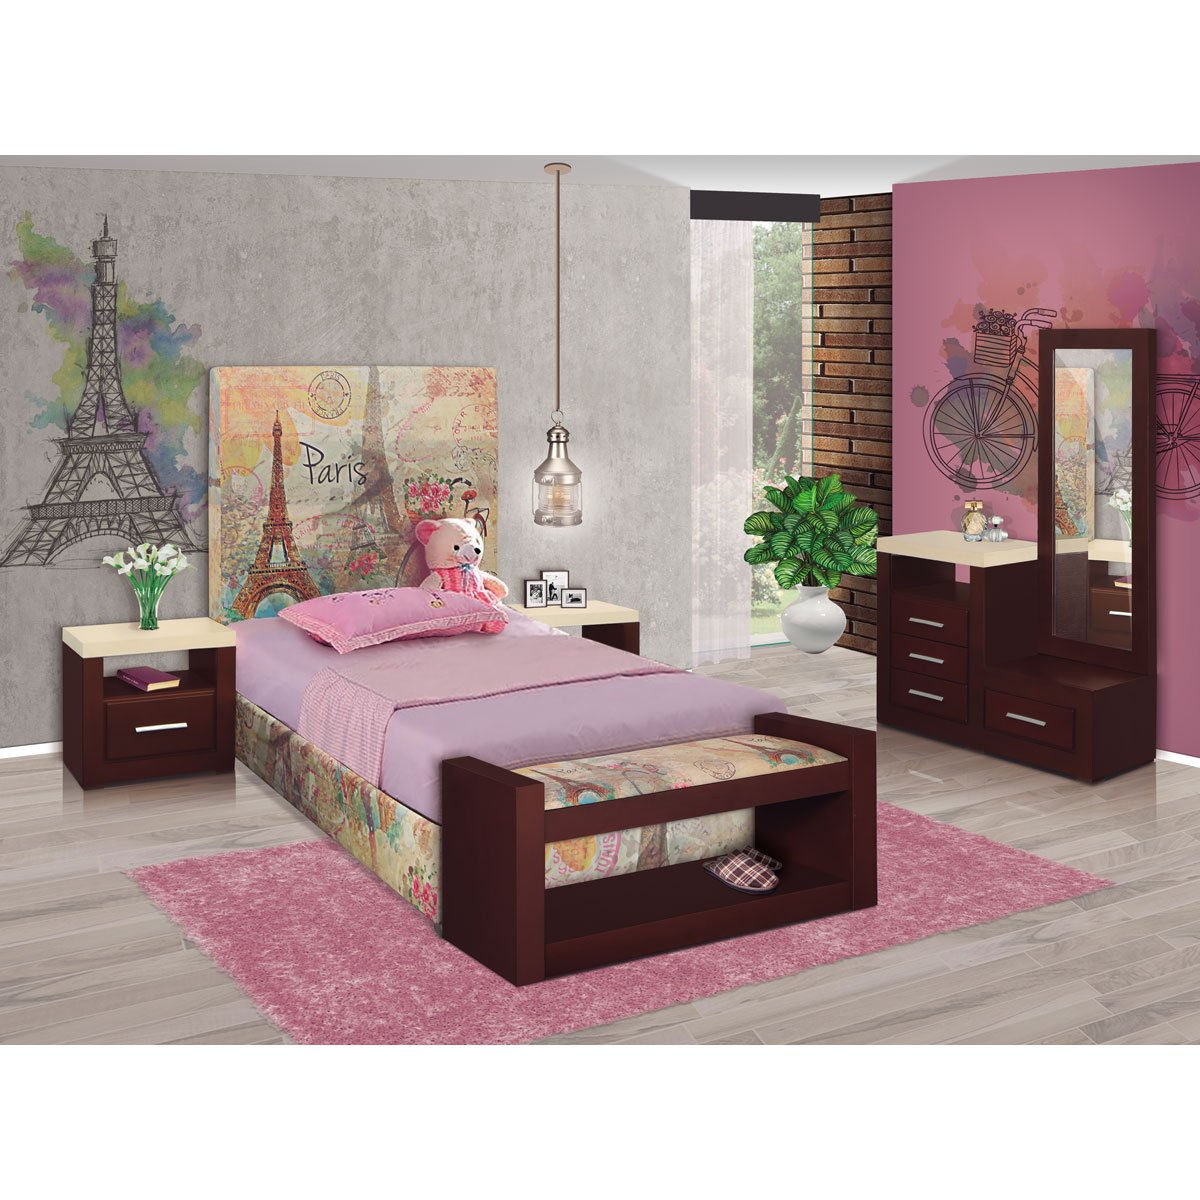 Base para cama matrimonial francia new challenge sears for Cama individual o matrimonial